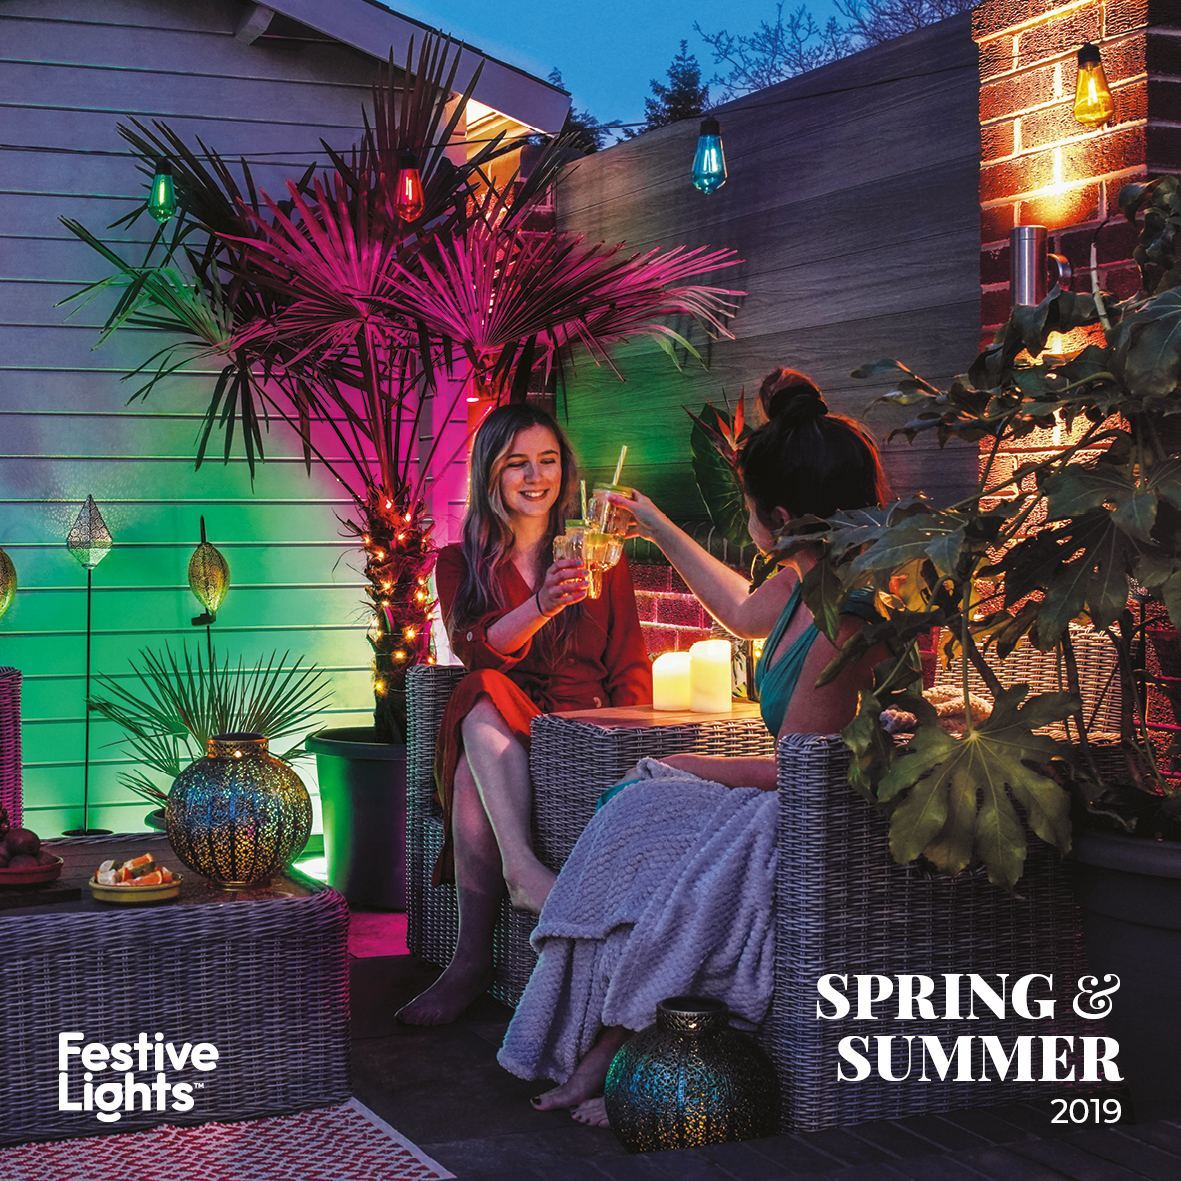 Festive Lights Summer 2019 Brochure